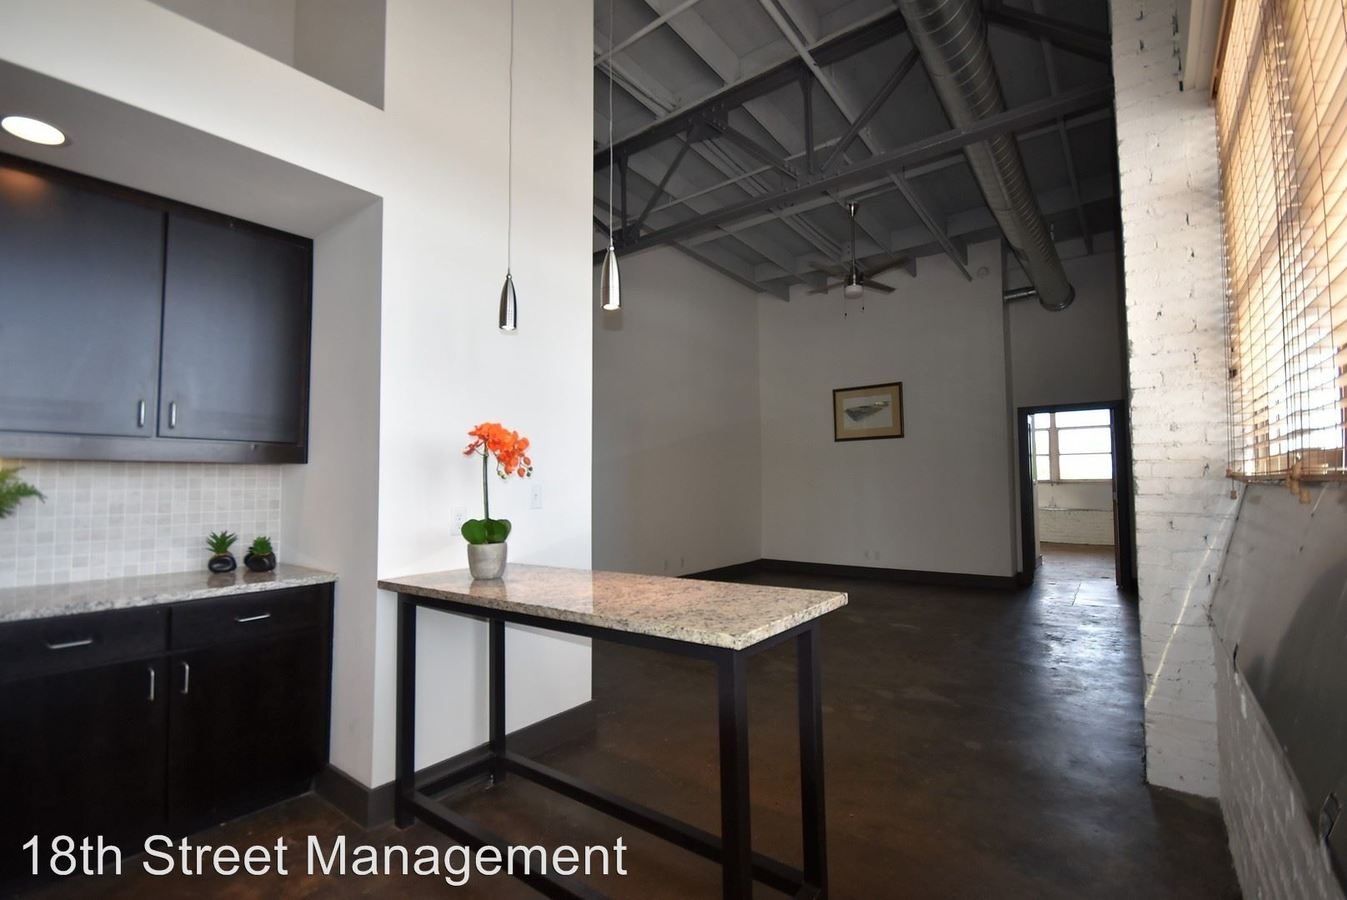 2 Bedrooms 2 Bathrooms Apartment for rent at East End Village in Tulsa, OK